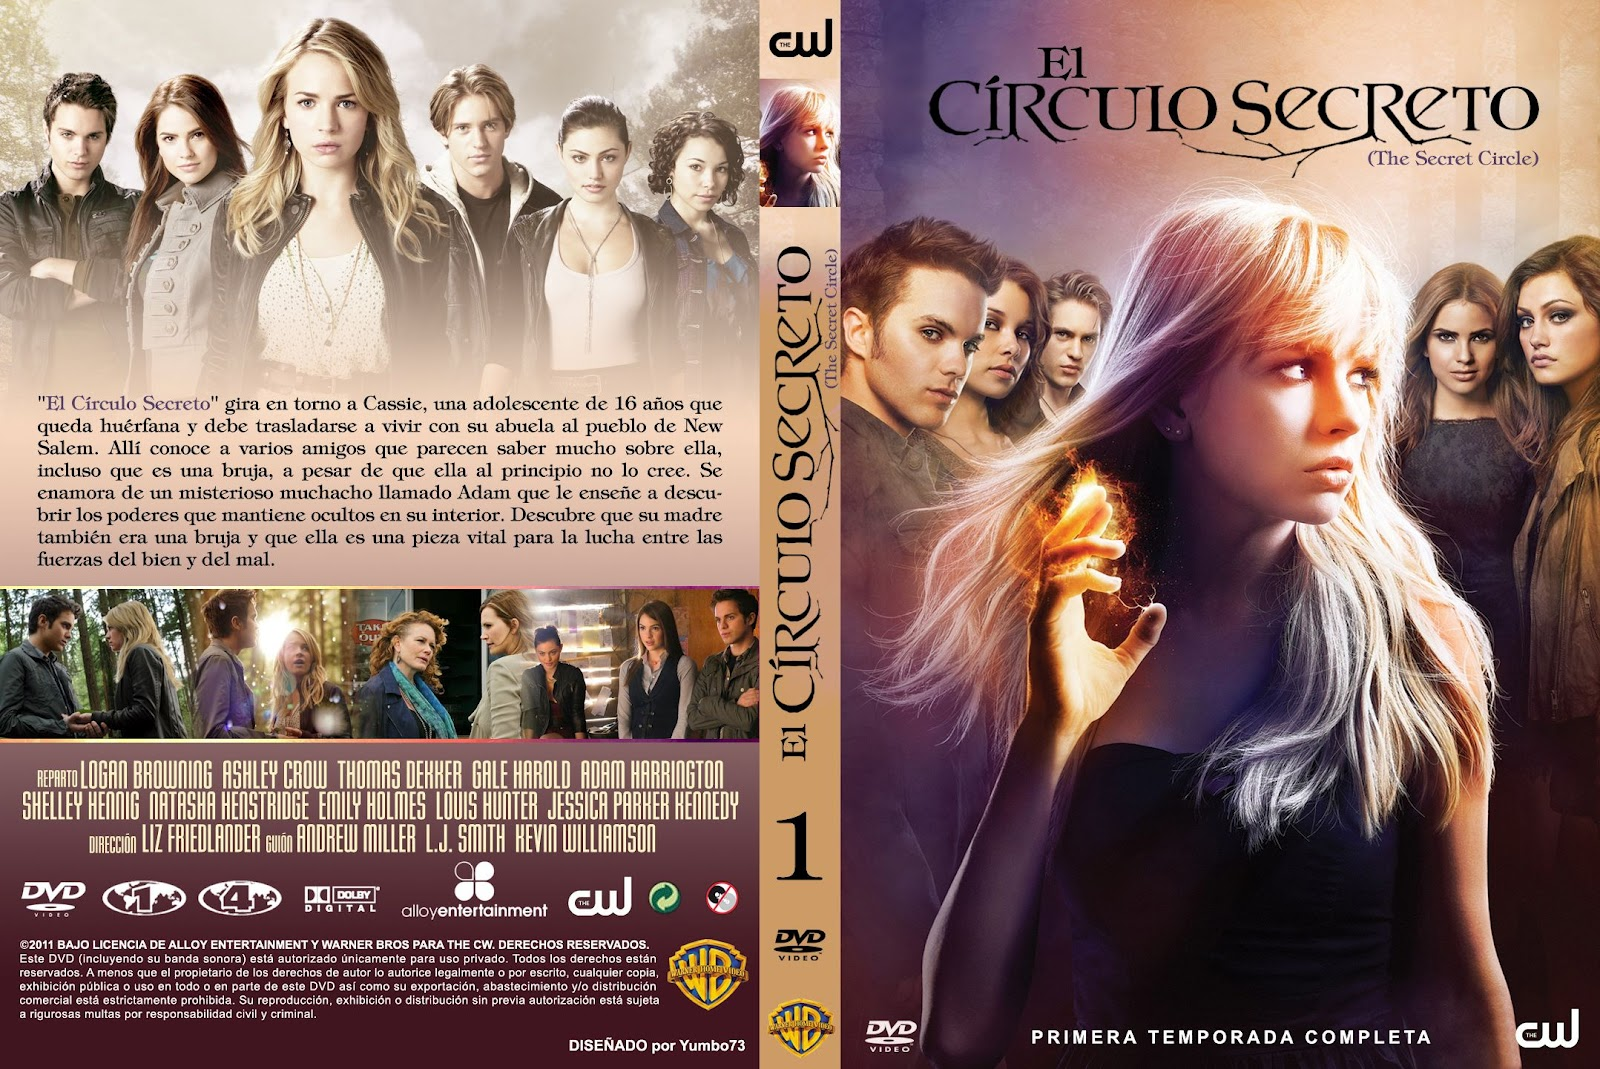 El Circulo Secreto Libro Series Tv El Circulo Secreto The Secret Circle Dvdhd